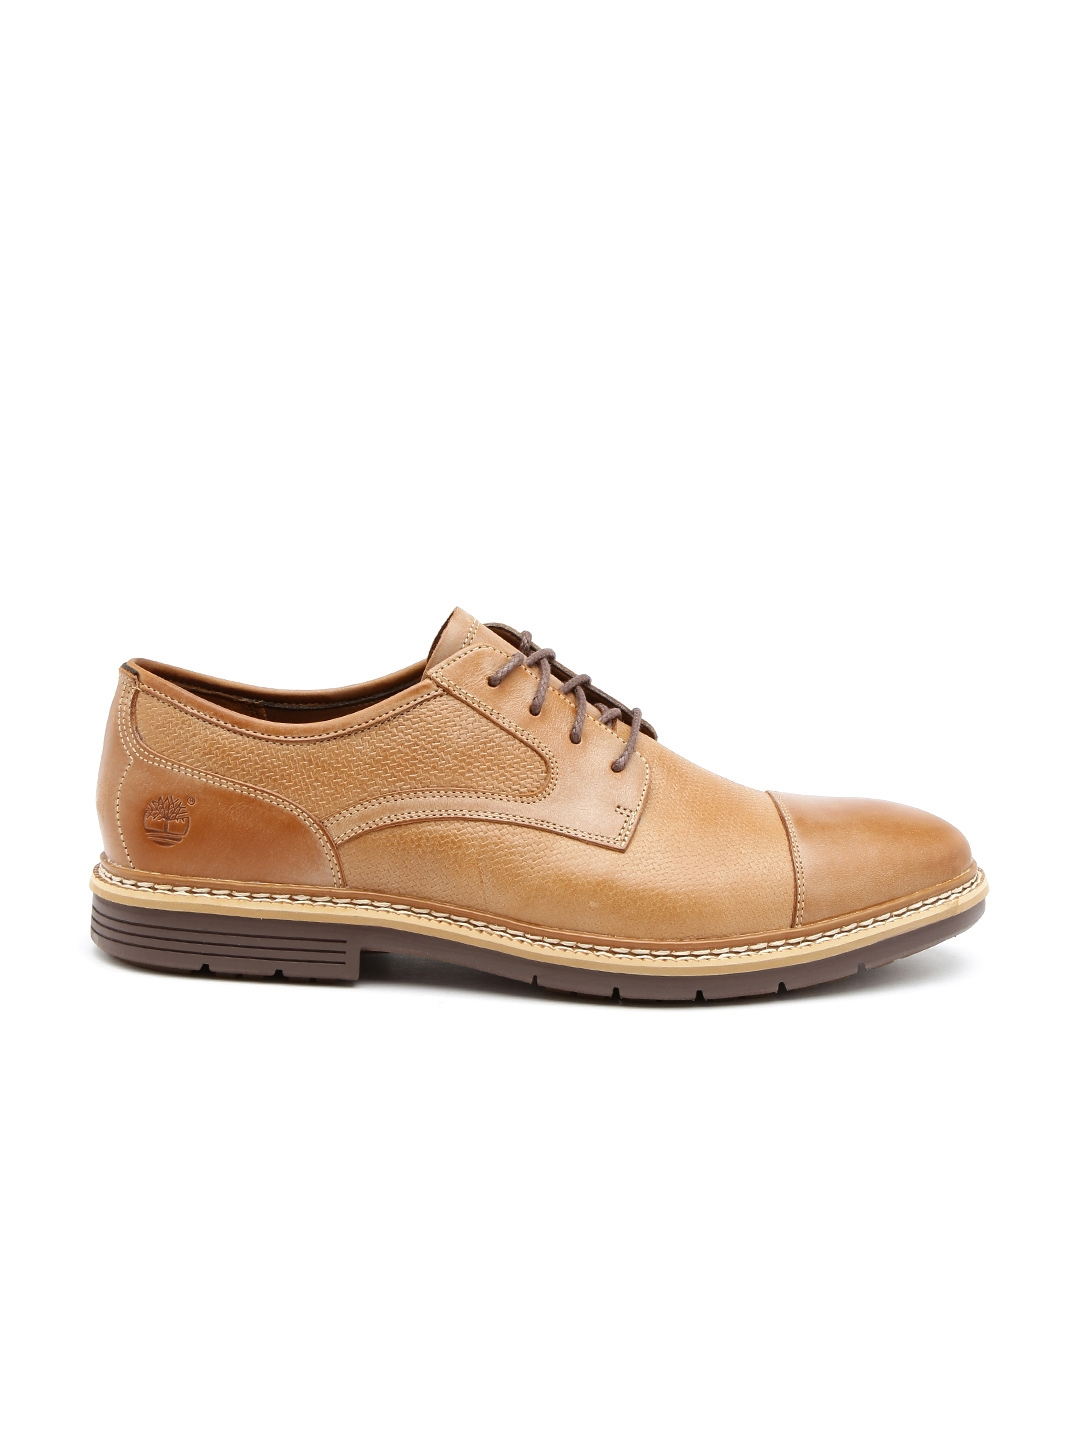 808e6895ae46 Buy Timberland Men Brown Leather Derby Semiformal Shoes - Formal ...